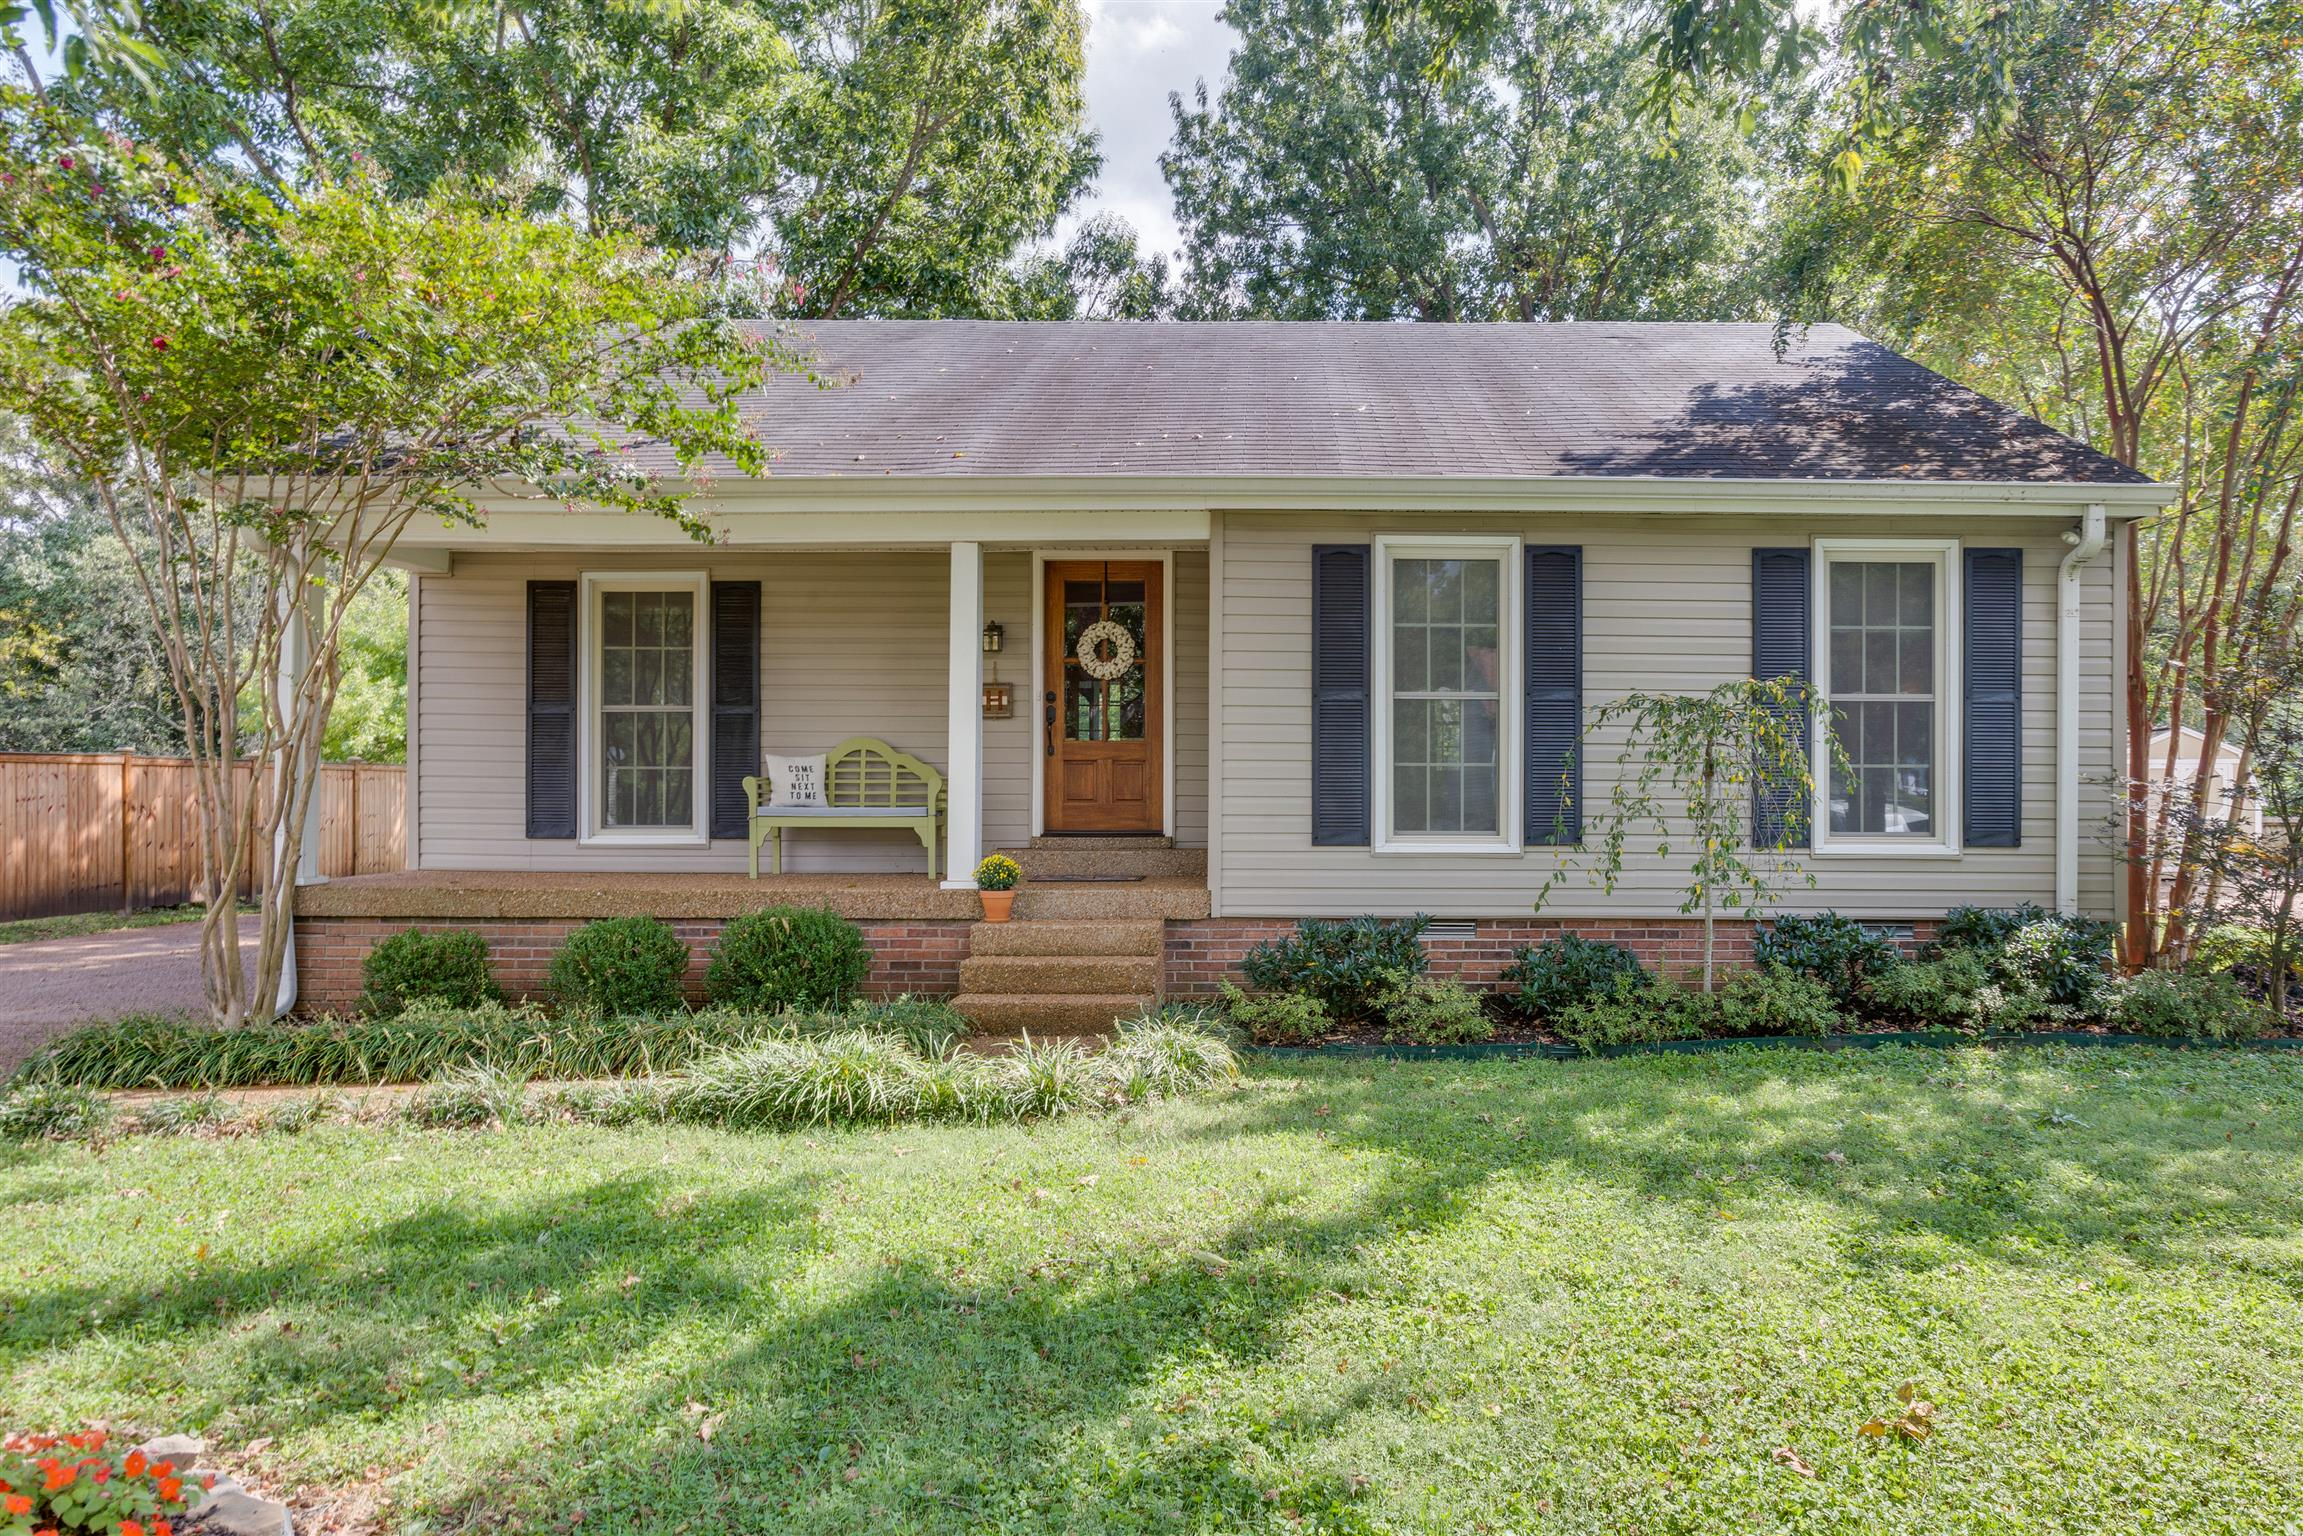 813 Harpeth Bend Dr, Bellevue in Davidson County County, TN 37221 Home for Sale